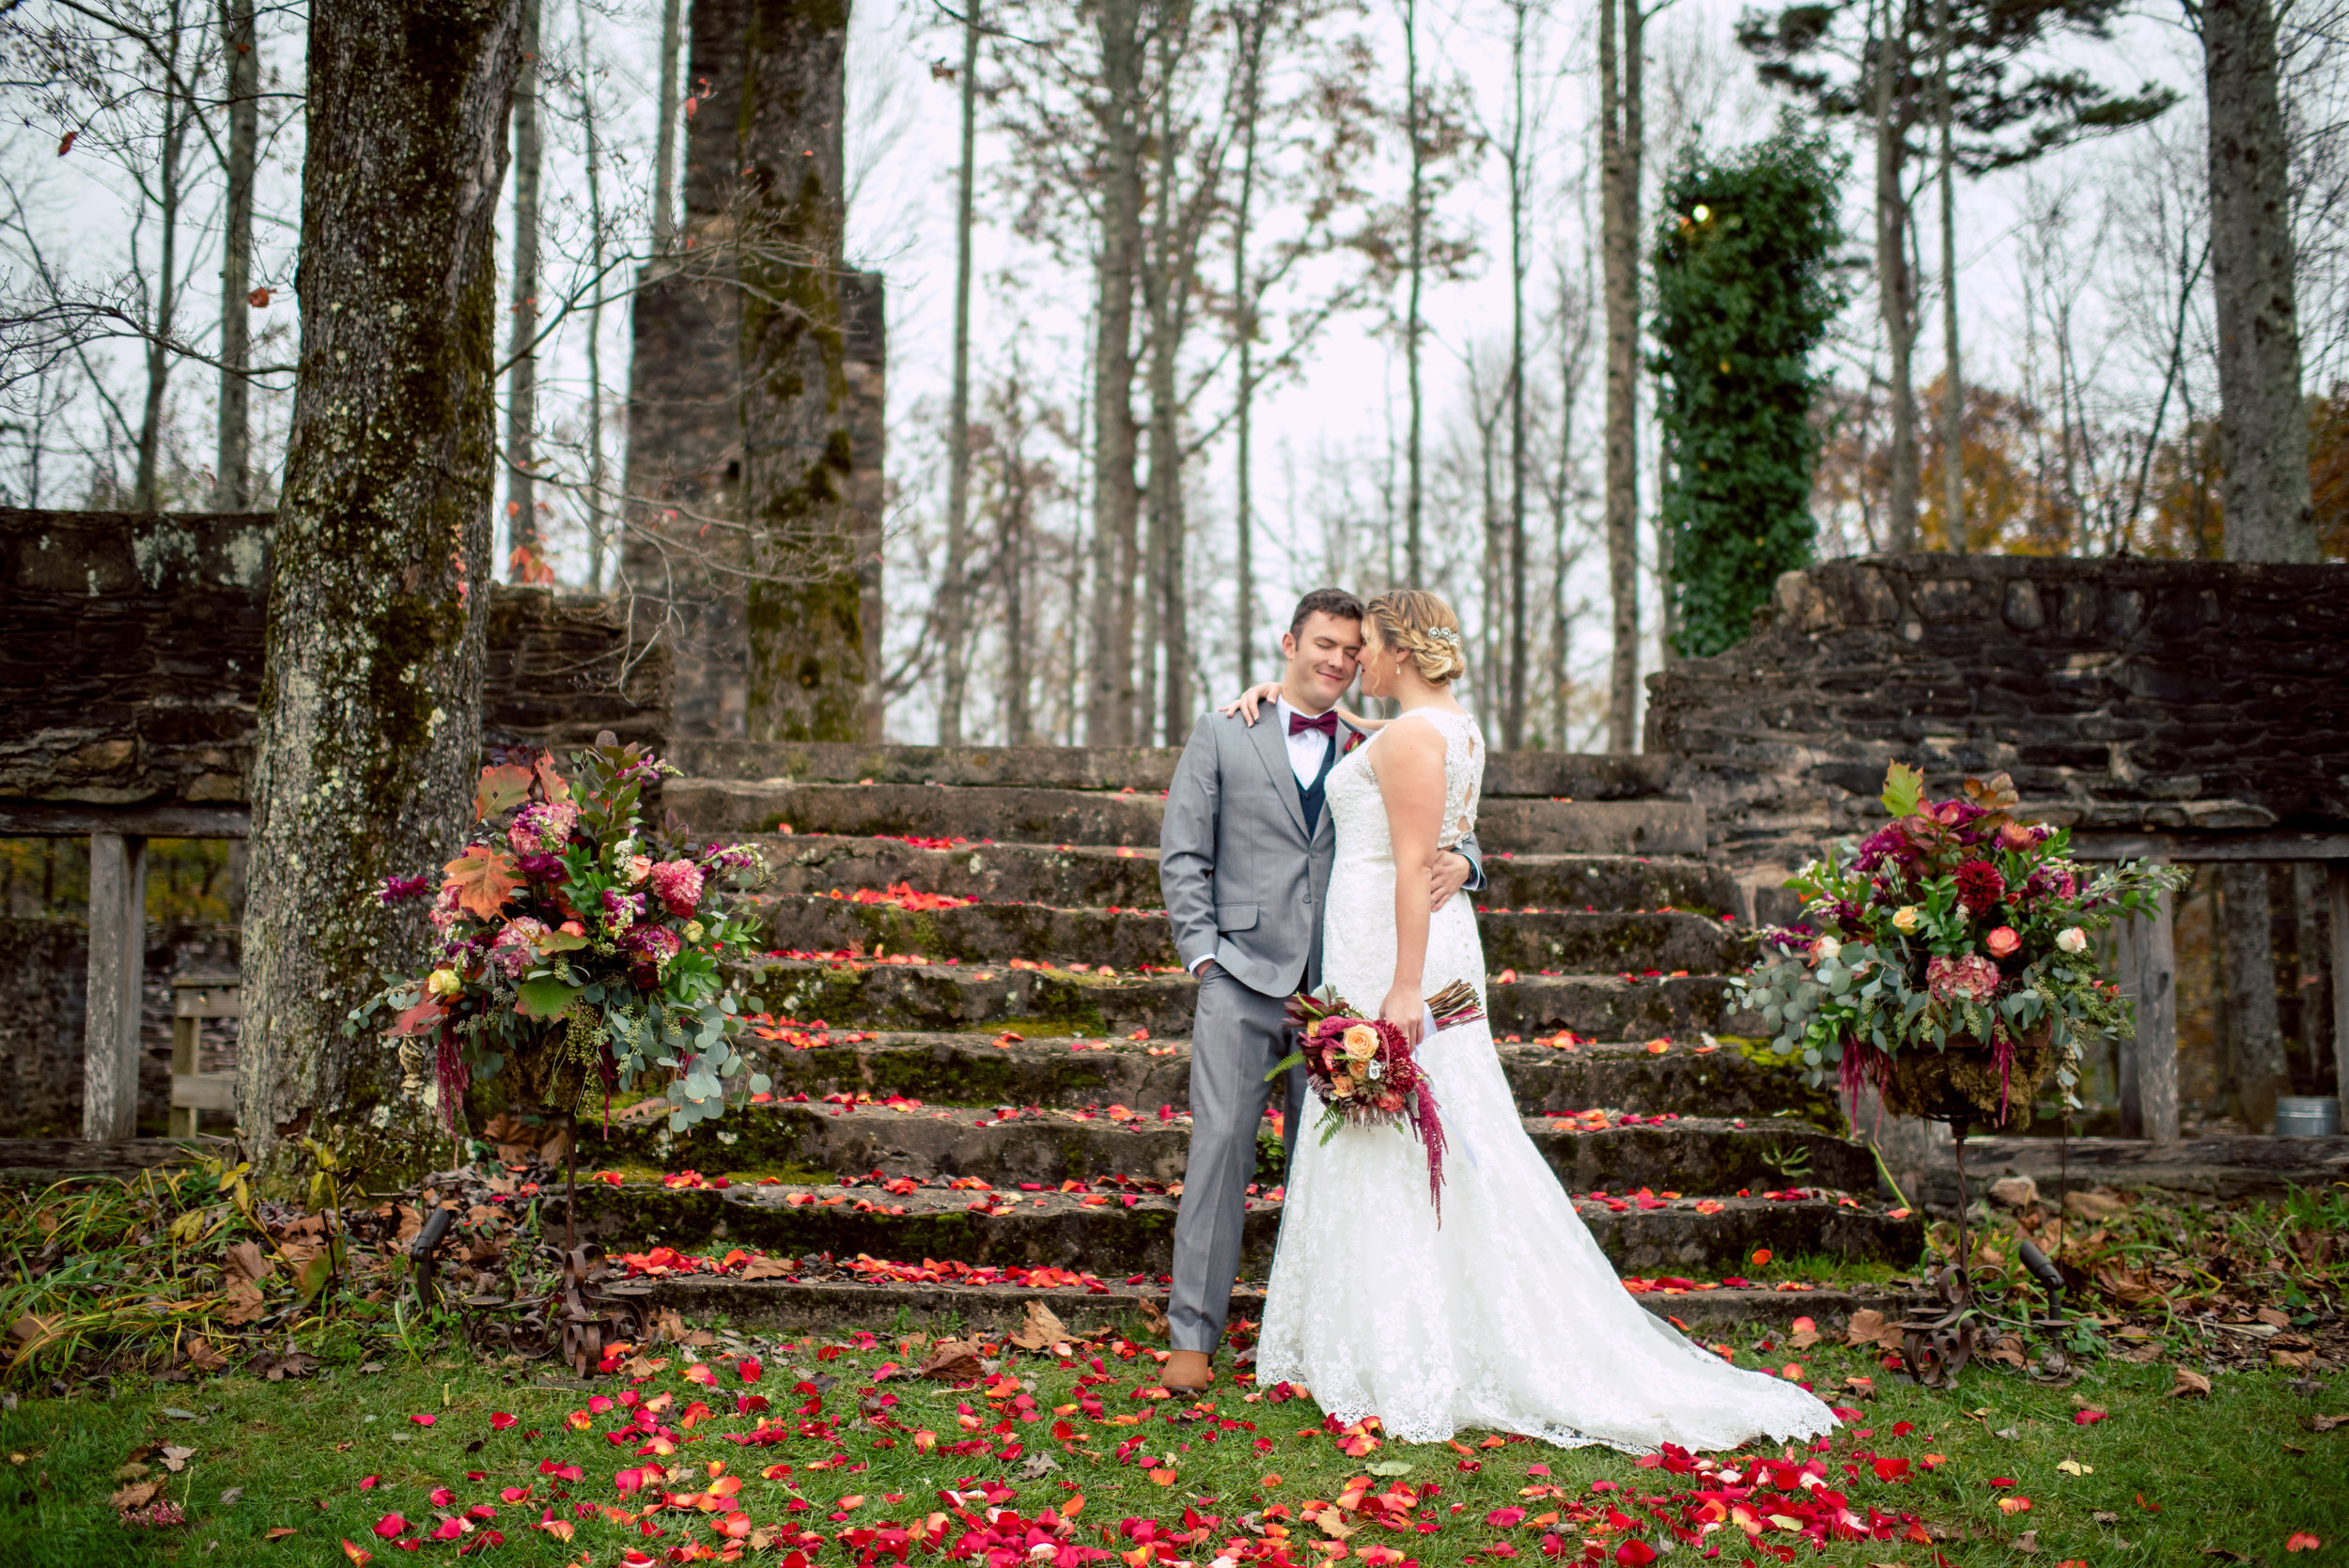 A Romantic, Jewel Toned Fall Wedding at The Ruins. | Flowers by Flower Buds. Picture by Once Like a Spark Photography. Venue The Ruins at Kellum Valley Farm